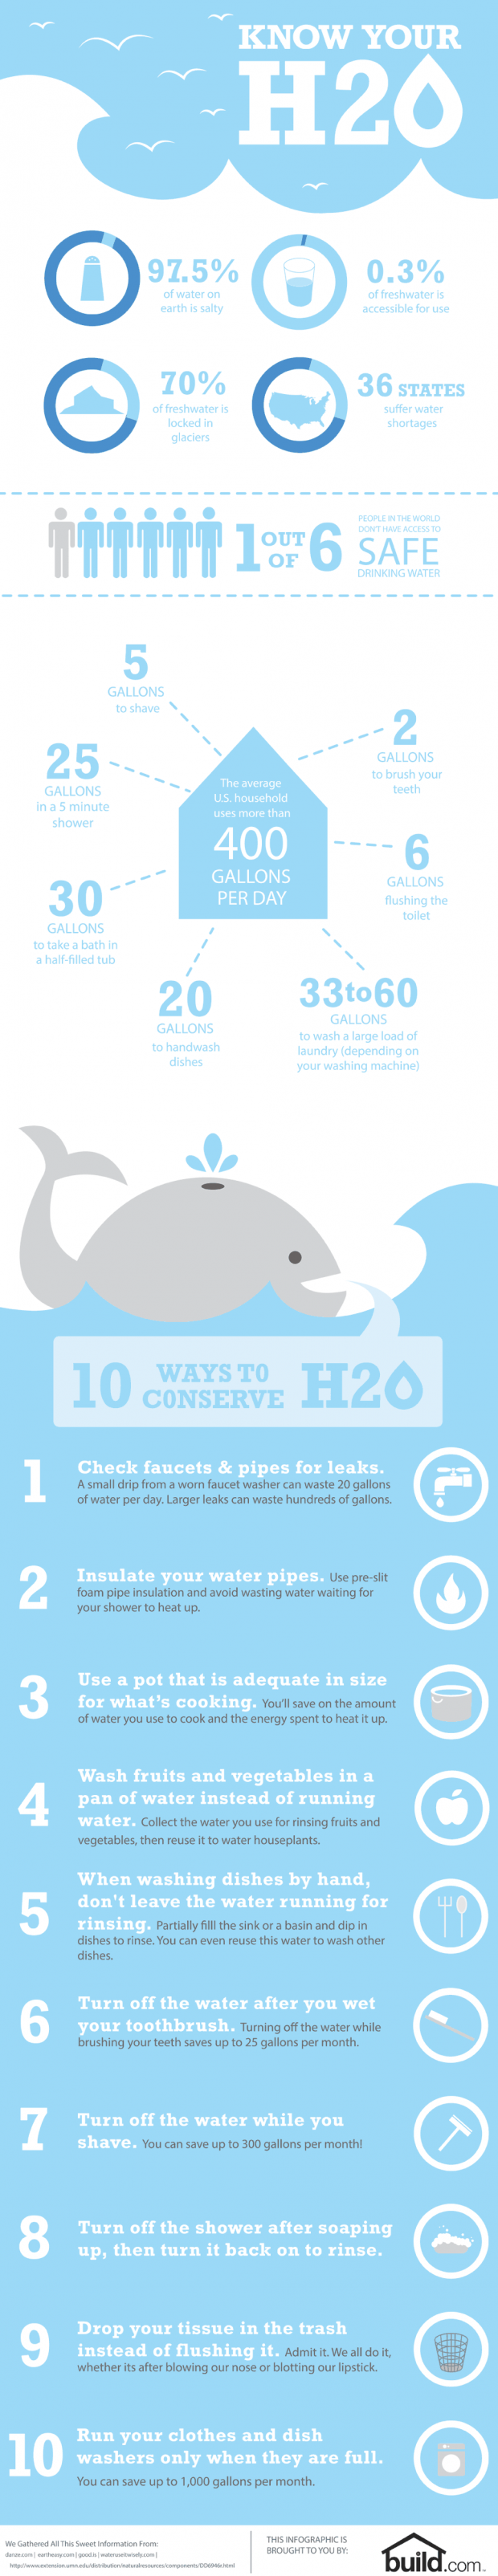 water-saving-tips-infographic1